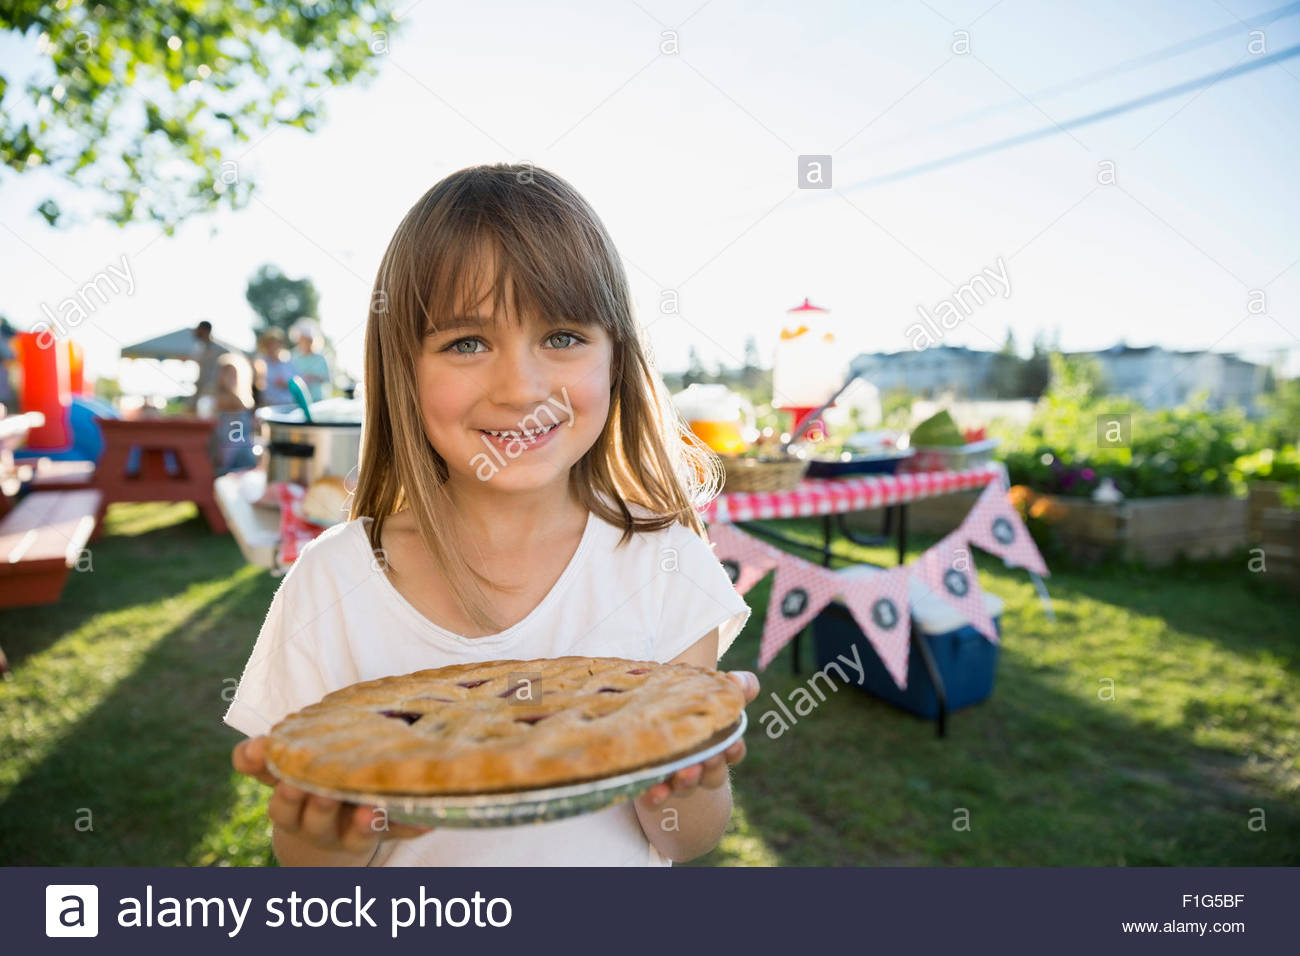 Portrait smiling girl holding fresh baked pie park - Stock Image